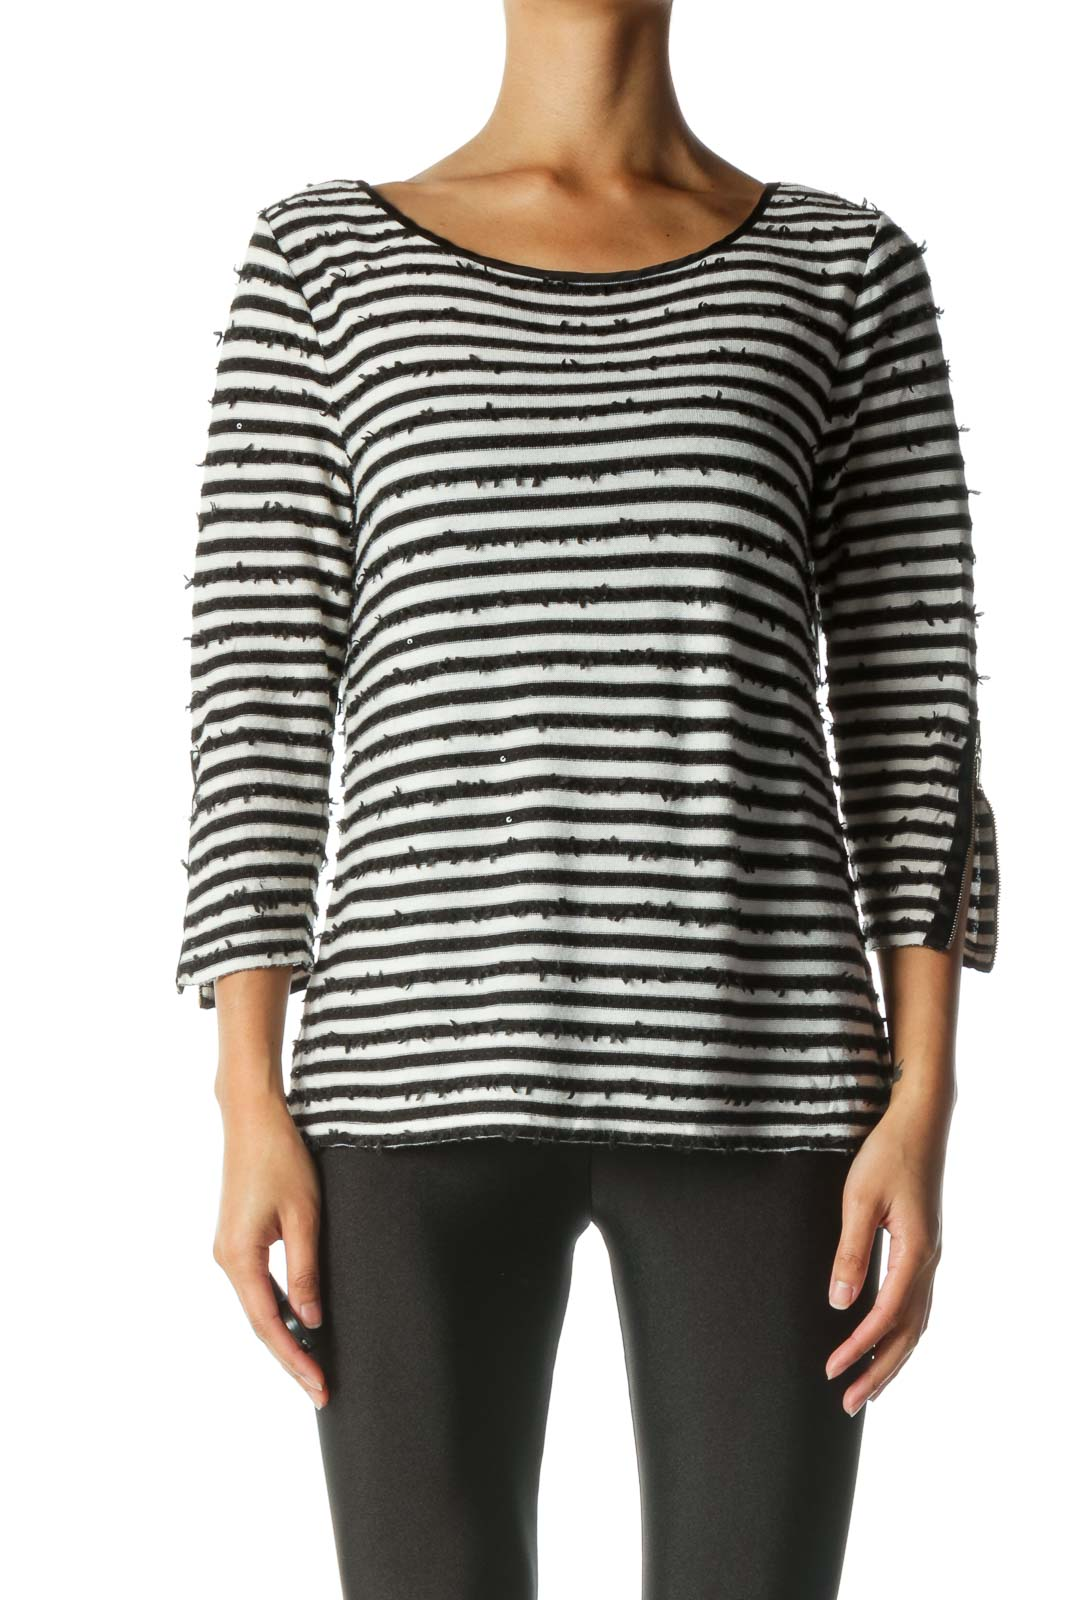 Black and White Striped Sequin Shirt